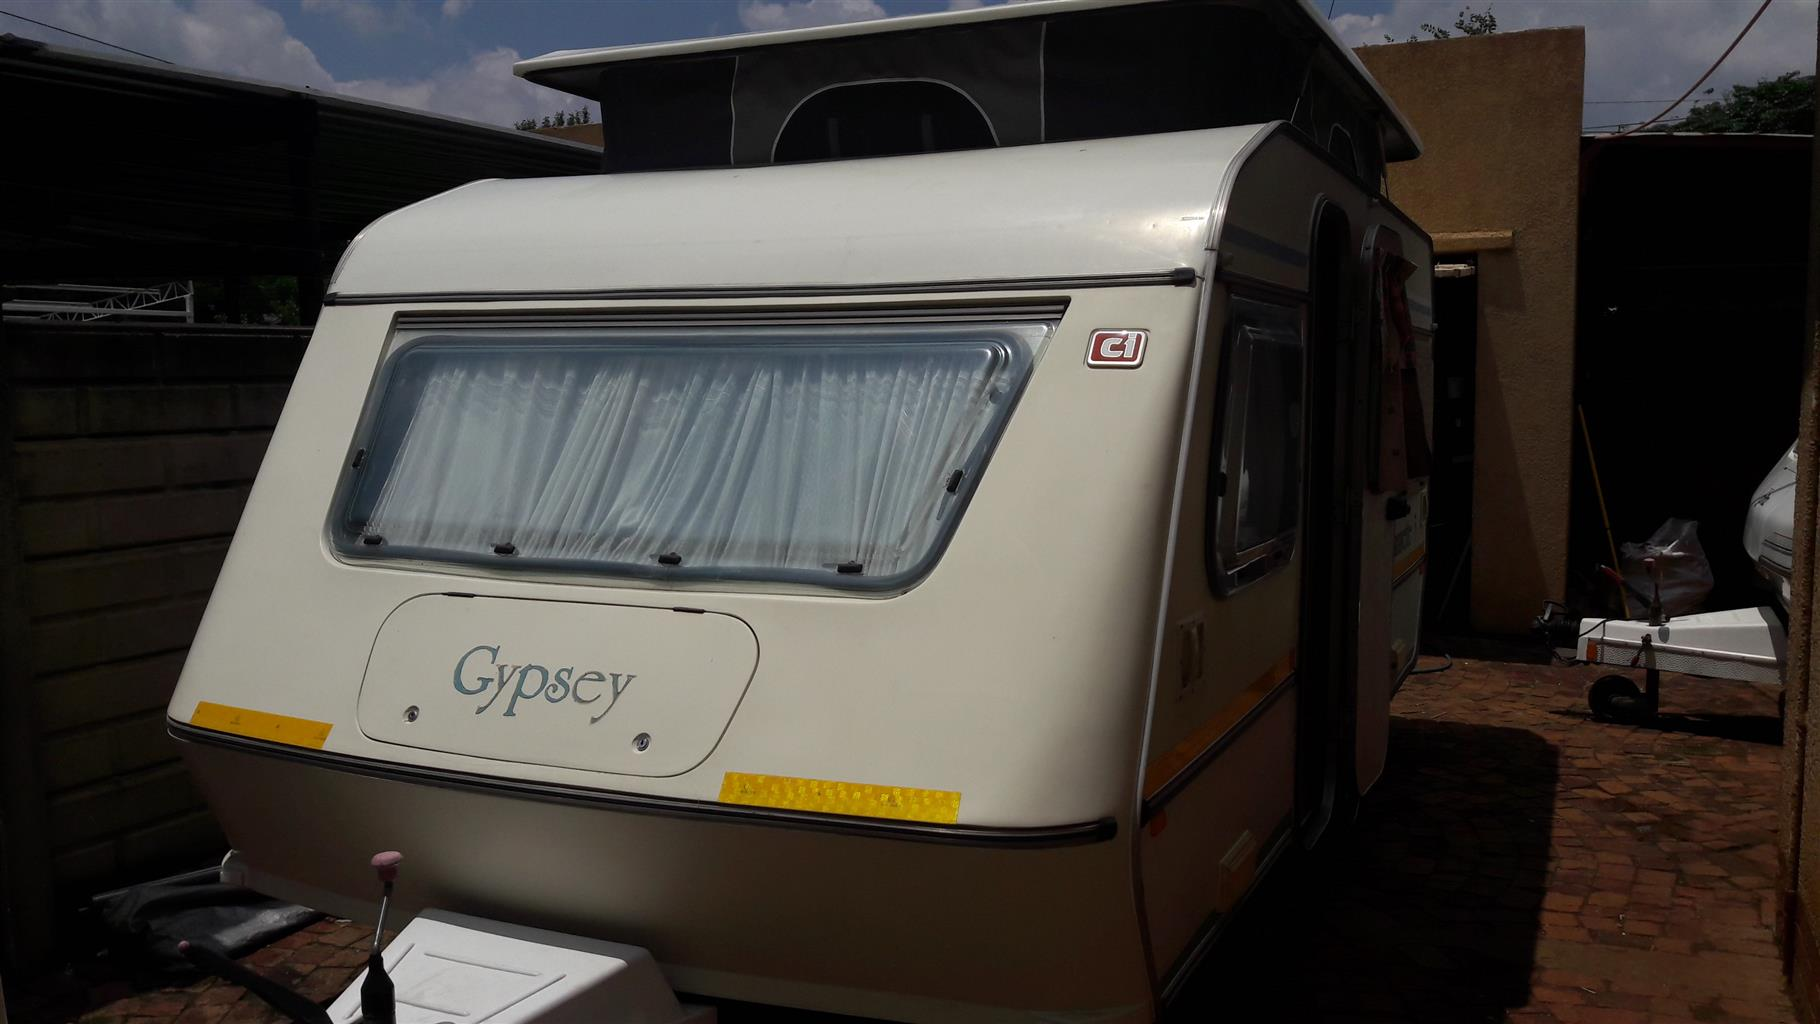 gypsey caravette 5 1992 model in vereeniging with full tent and rally tent